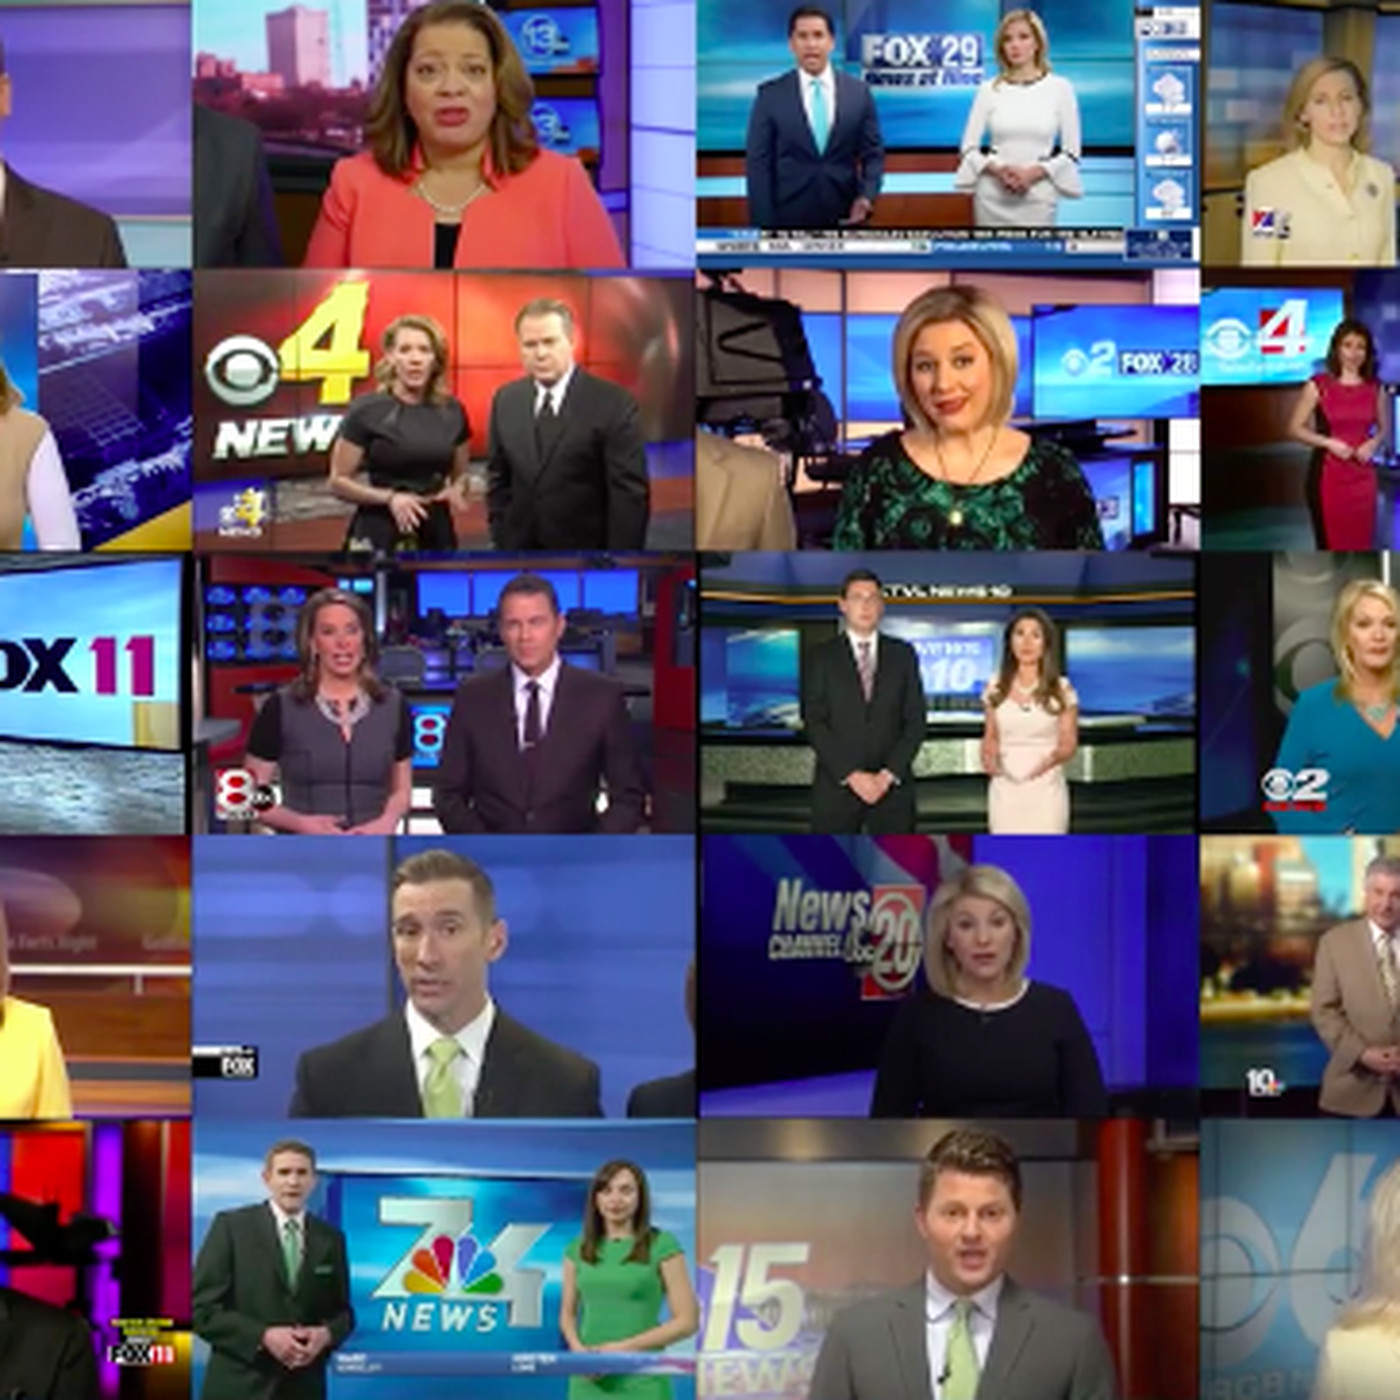 Watch: dozens of Sinclair local TV anchors read the same